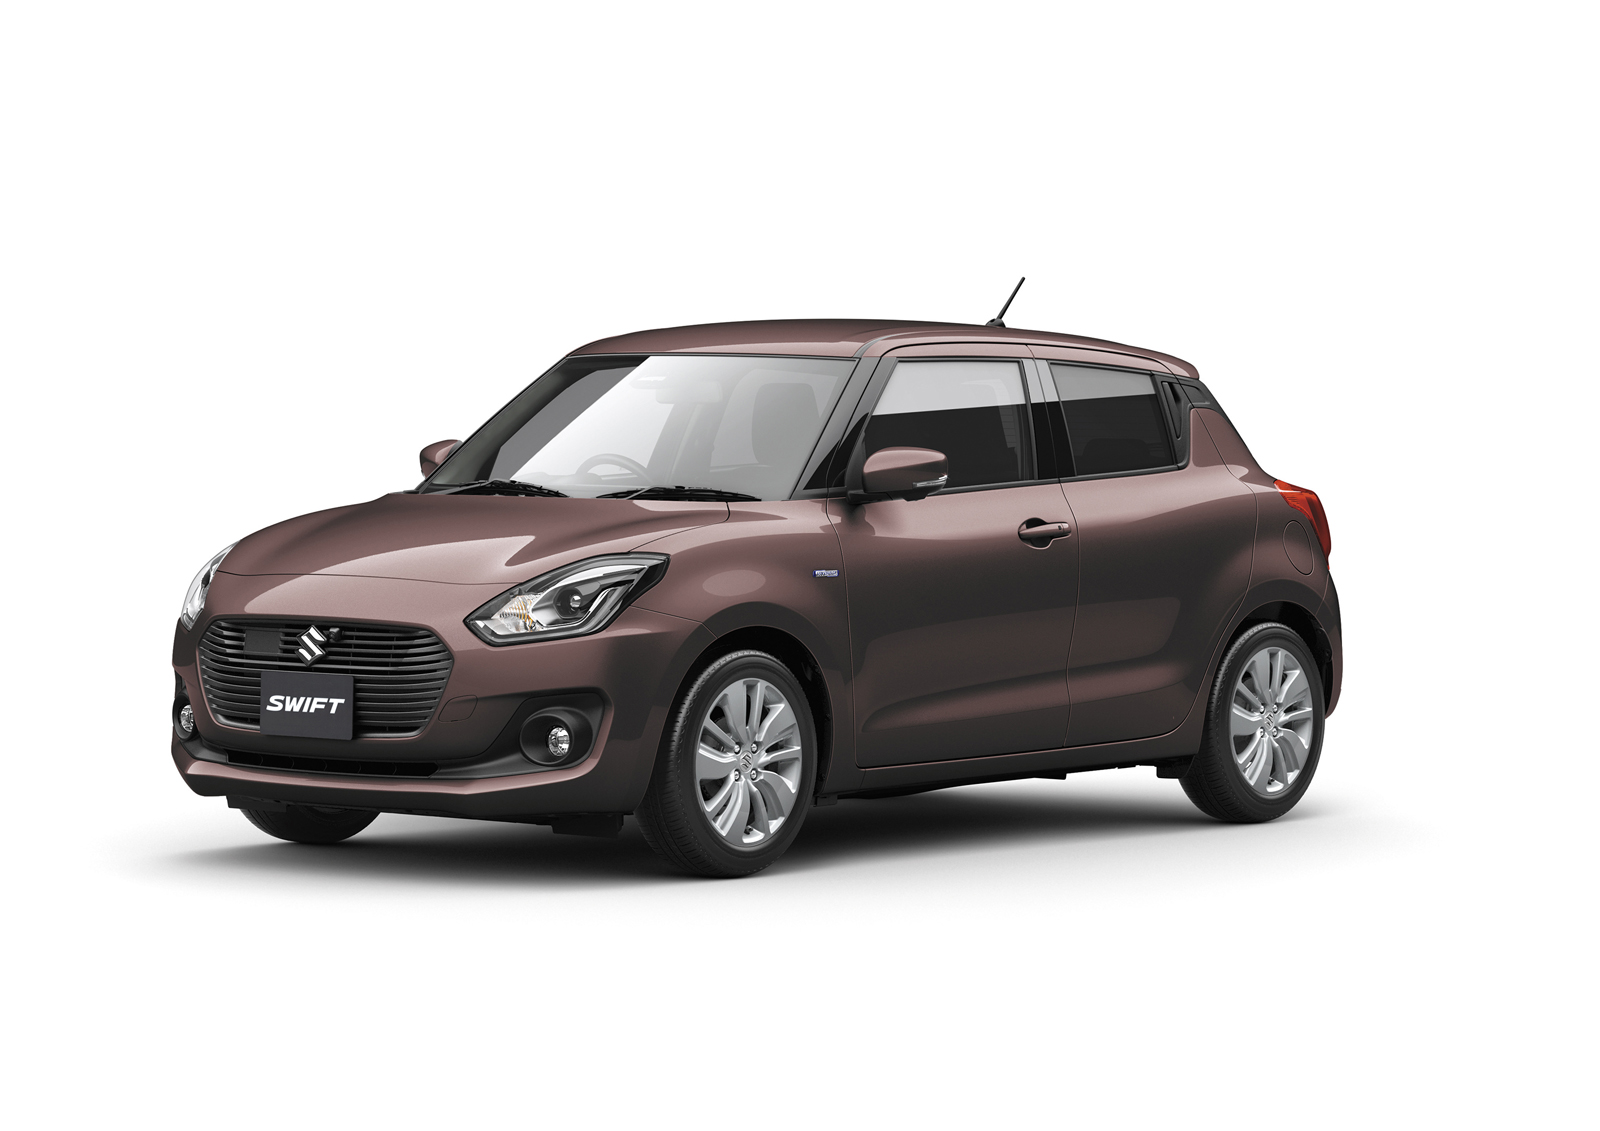 Suzuki Swift 2017 (8)